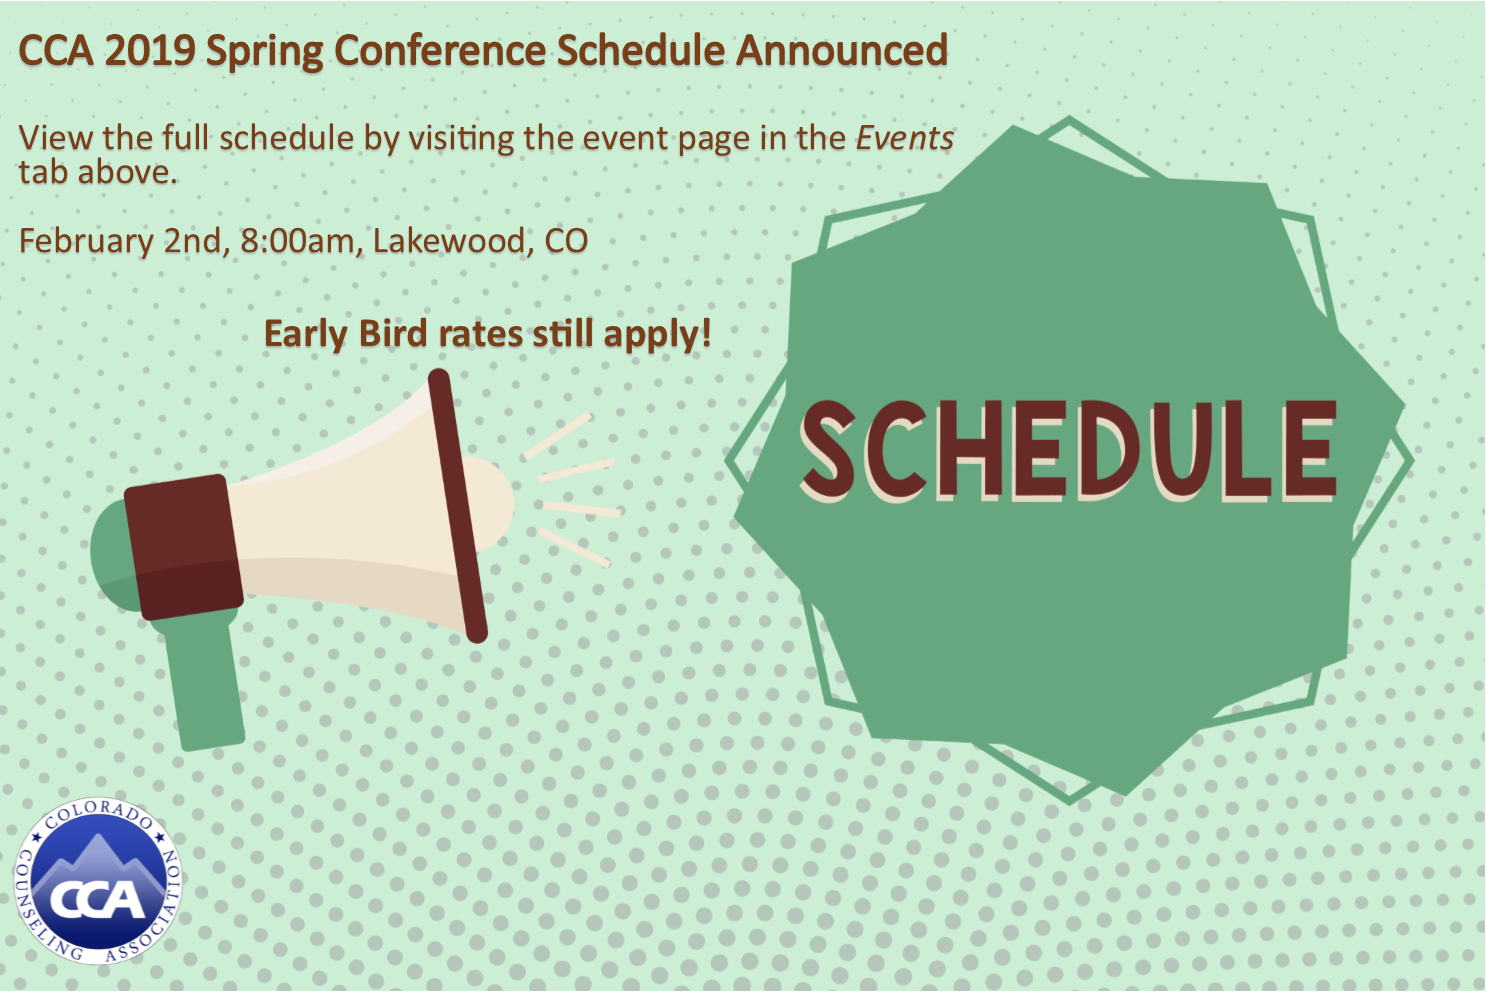 Spring Conference Schedule Announced